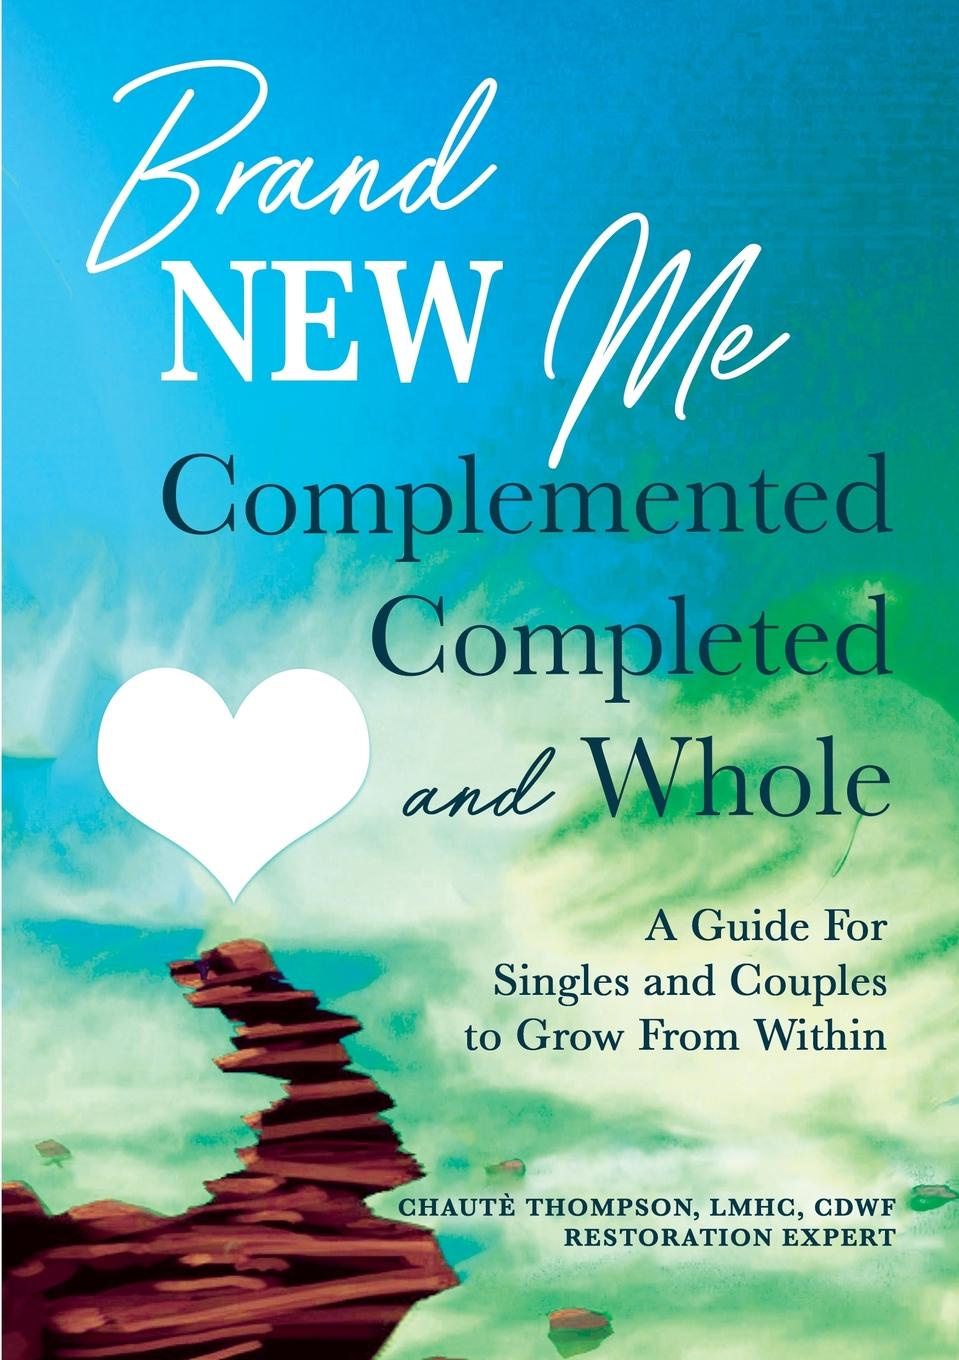 Chaute Thompson Brand New Me. Complemented, Completed and Whole: A Guide for Singles and Couples to Grow from Within can can the singles